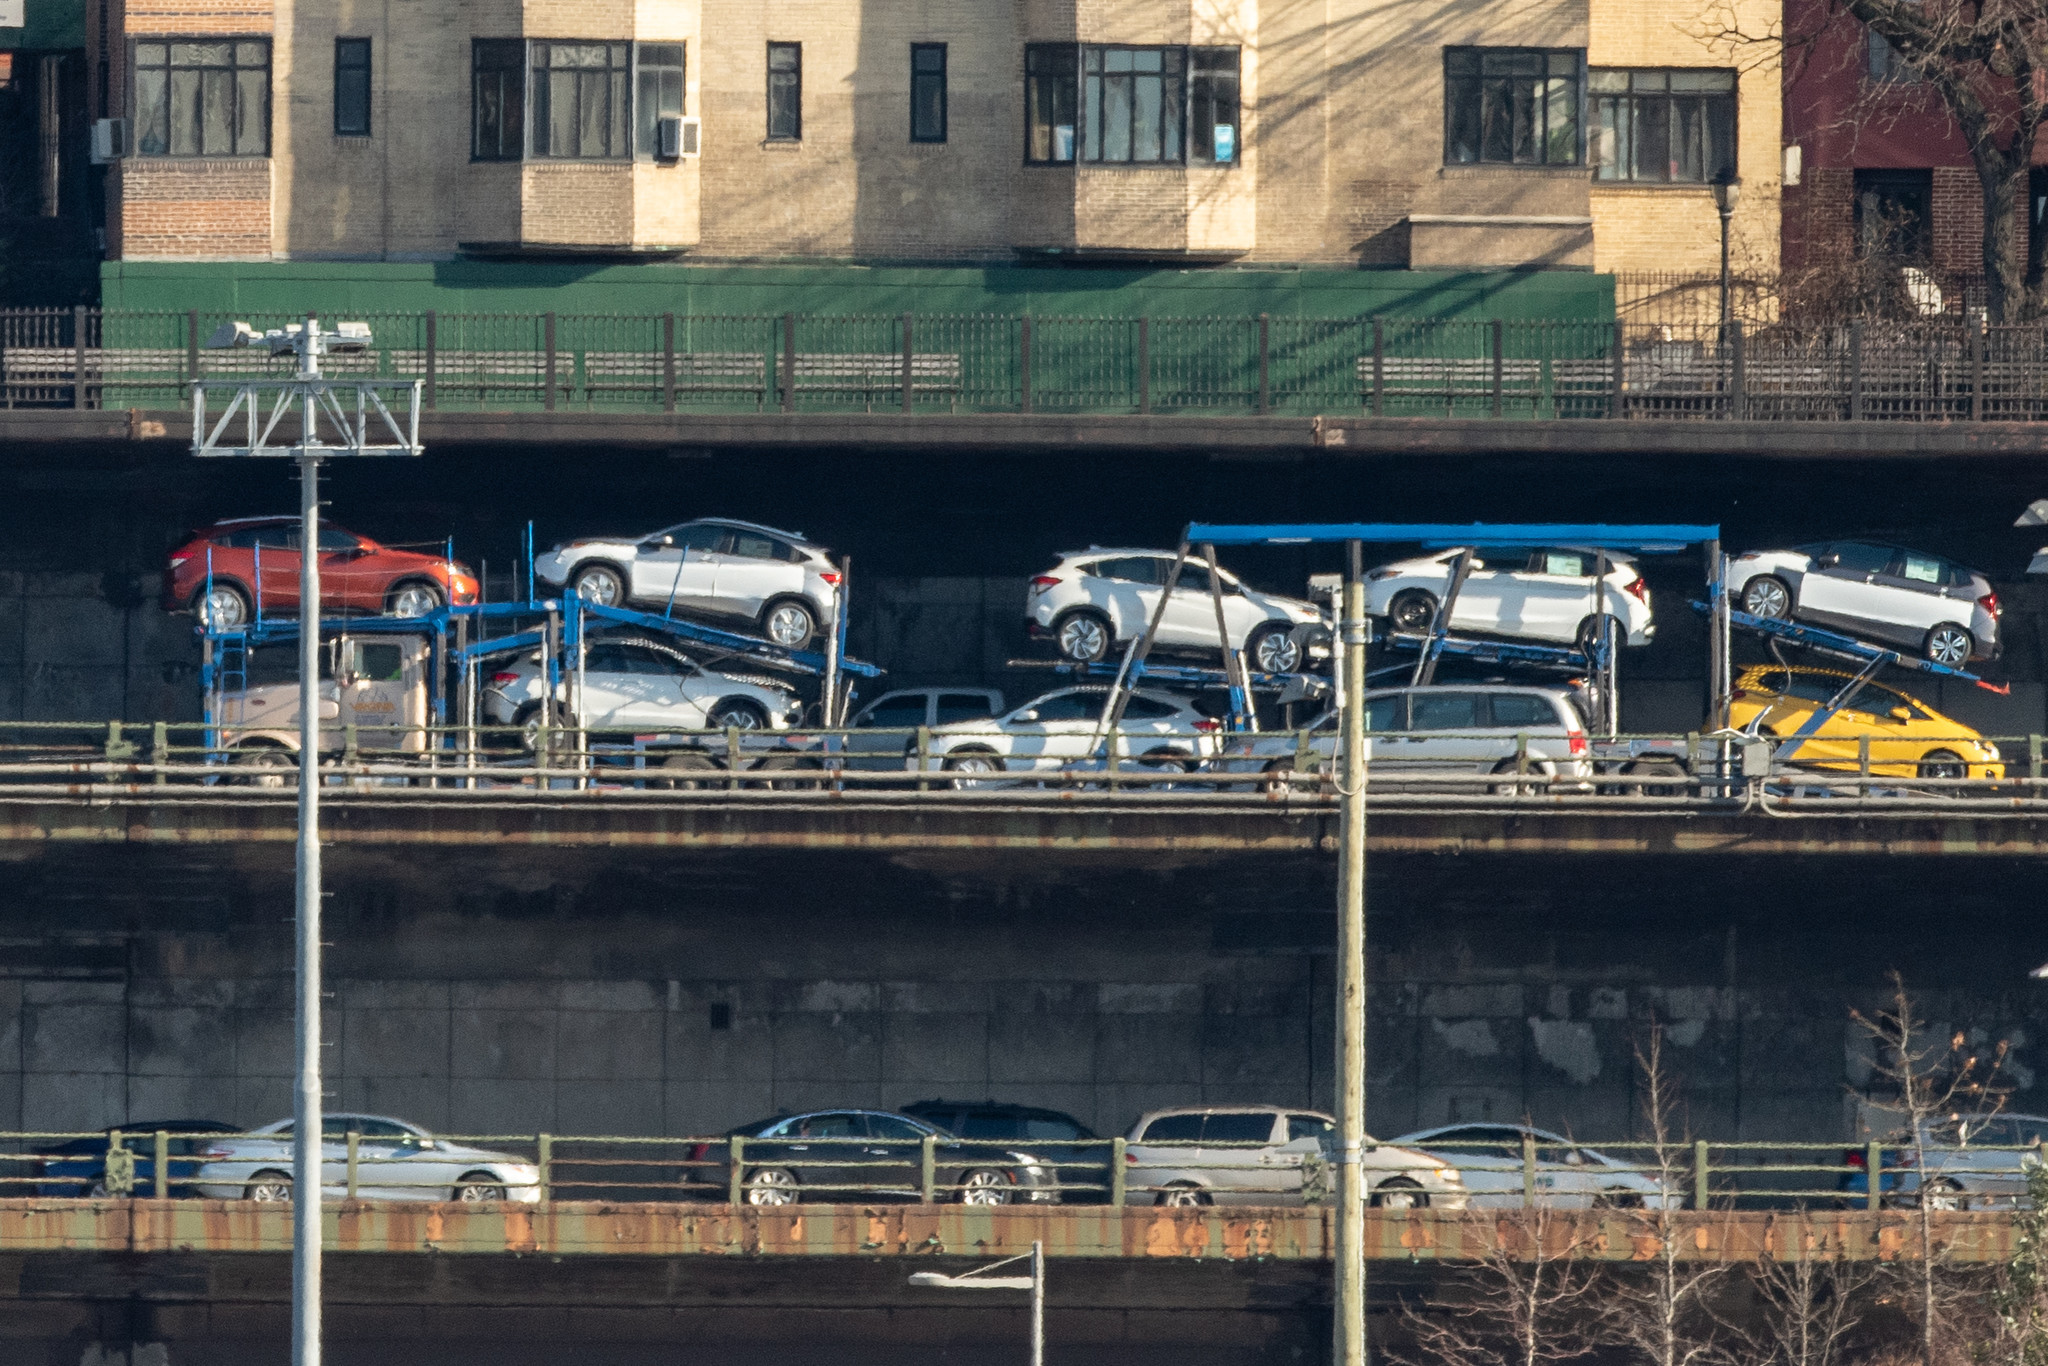 Readers sound off on the BQE, the new police commissioner, and sewer backups